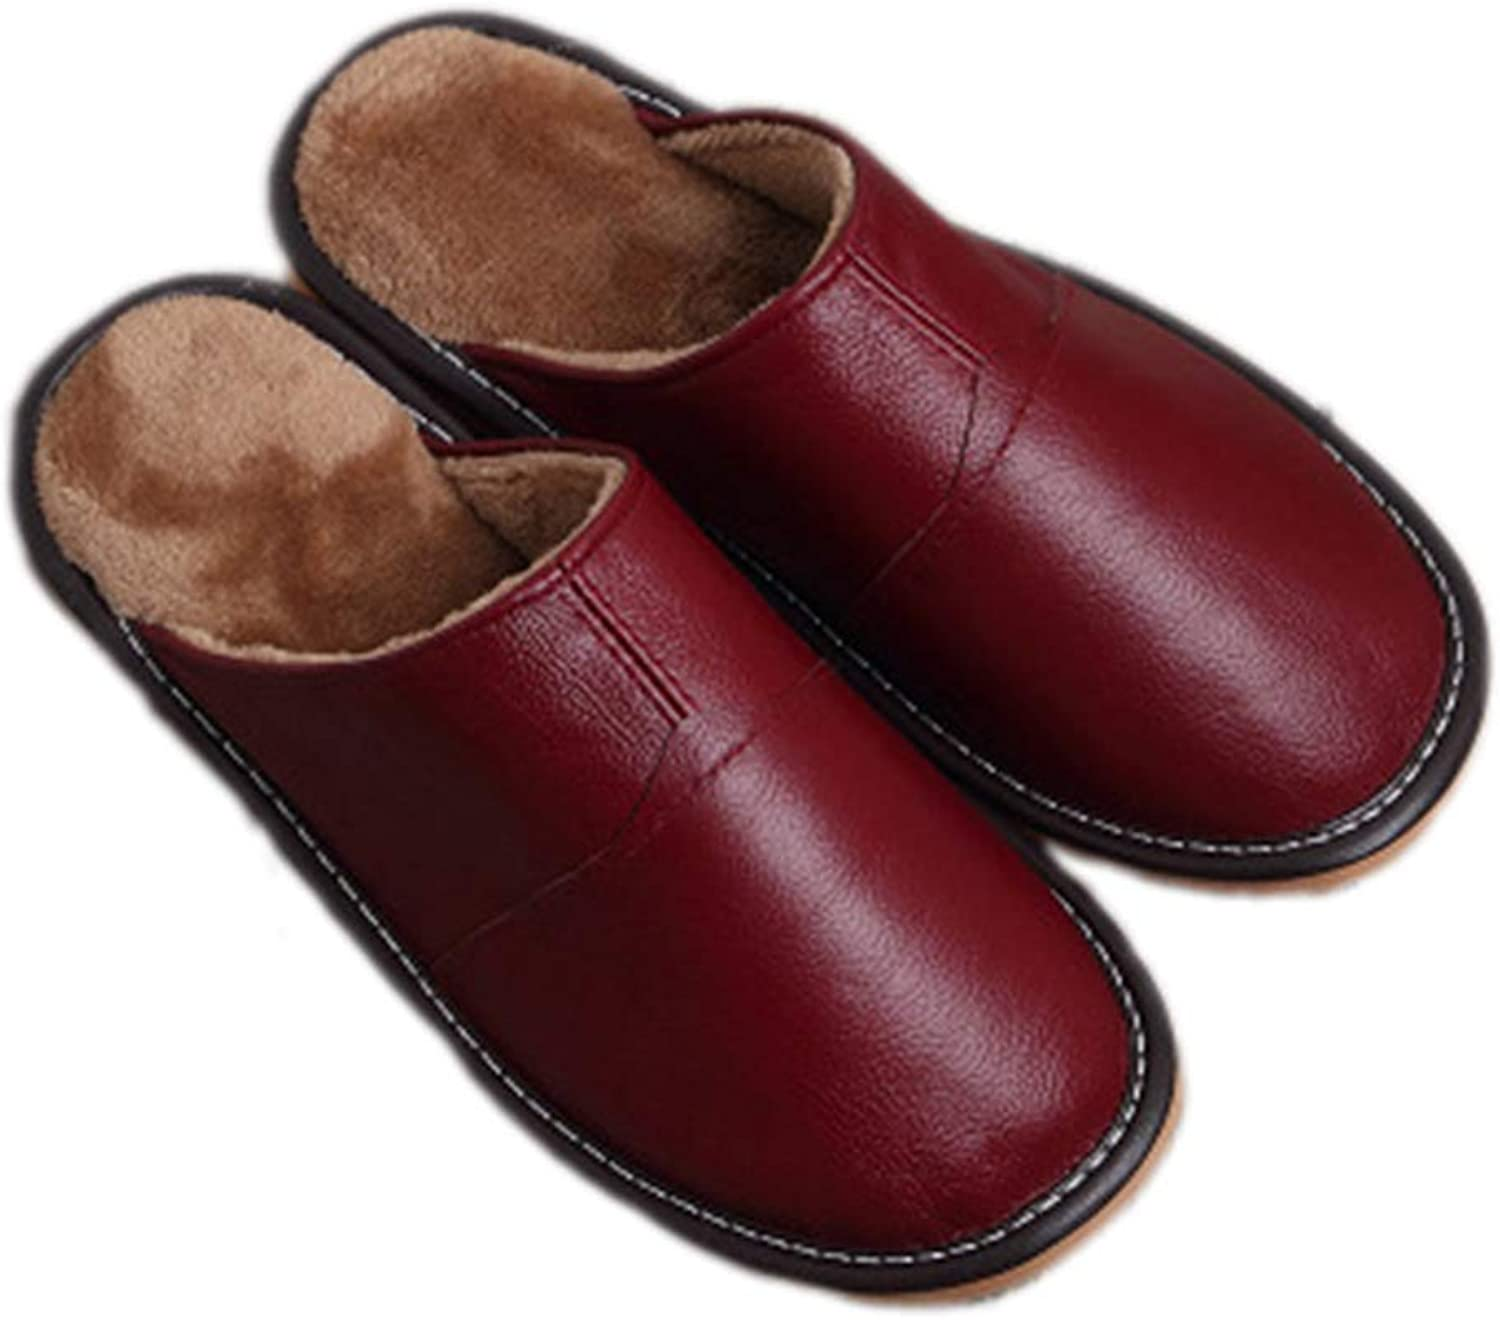 Nafanio Home Winter Slippers Genuine Leather Women Men Flats Plush Warm Indoor shoes